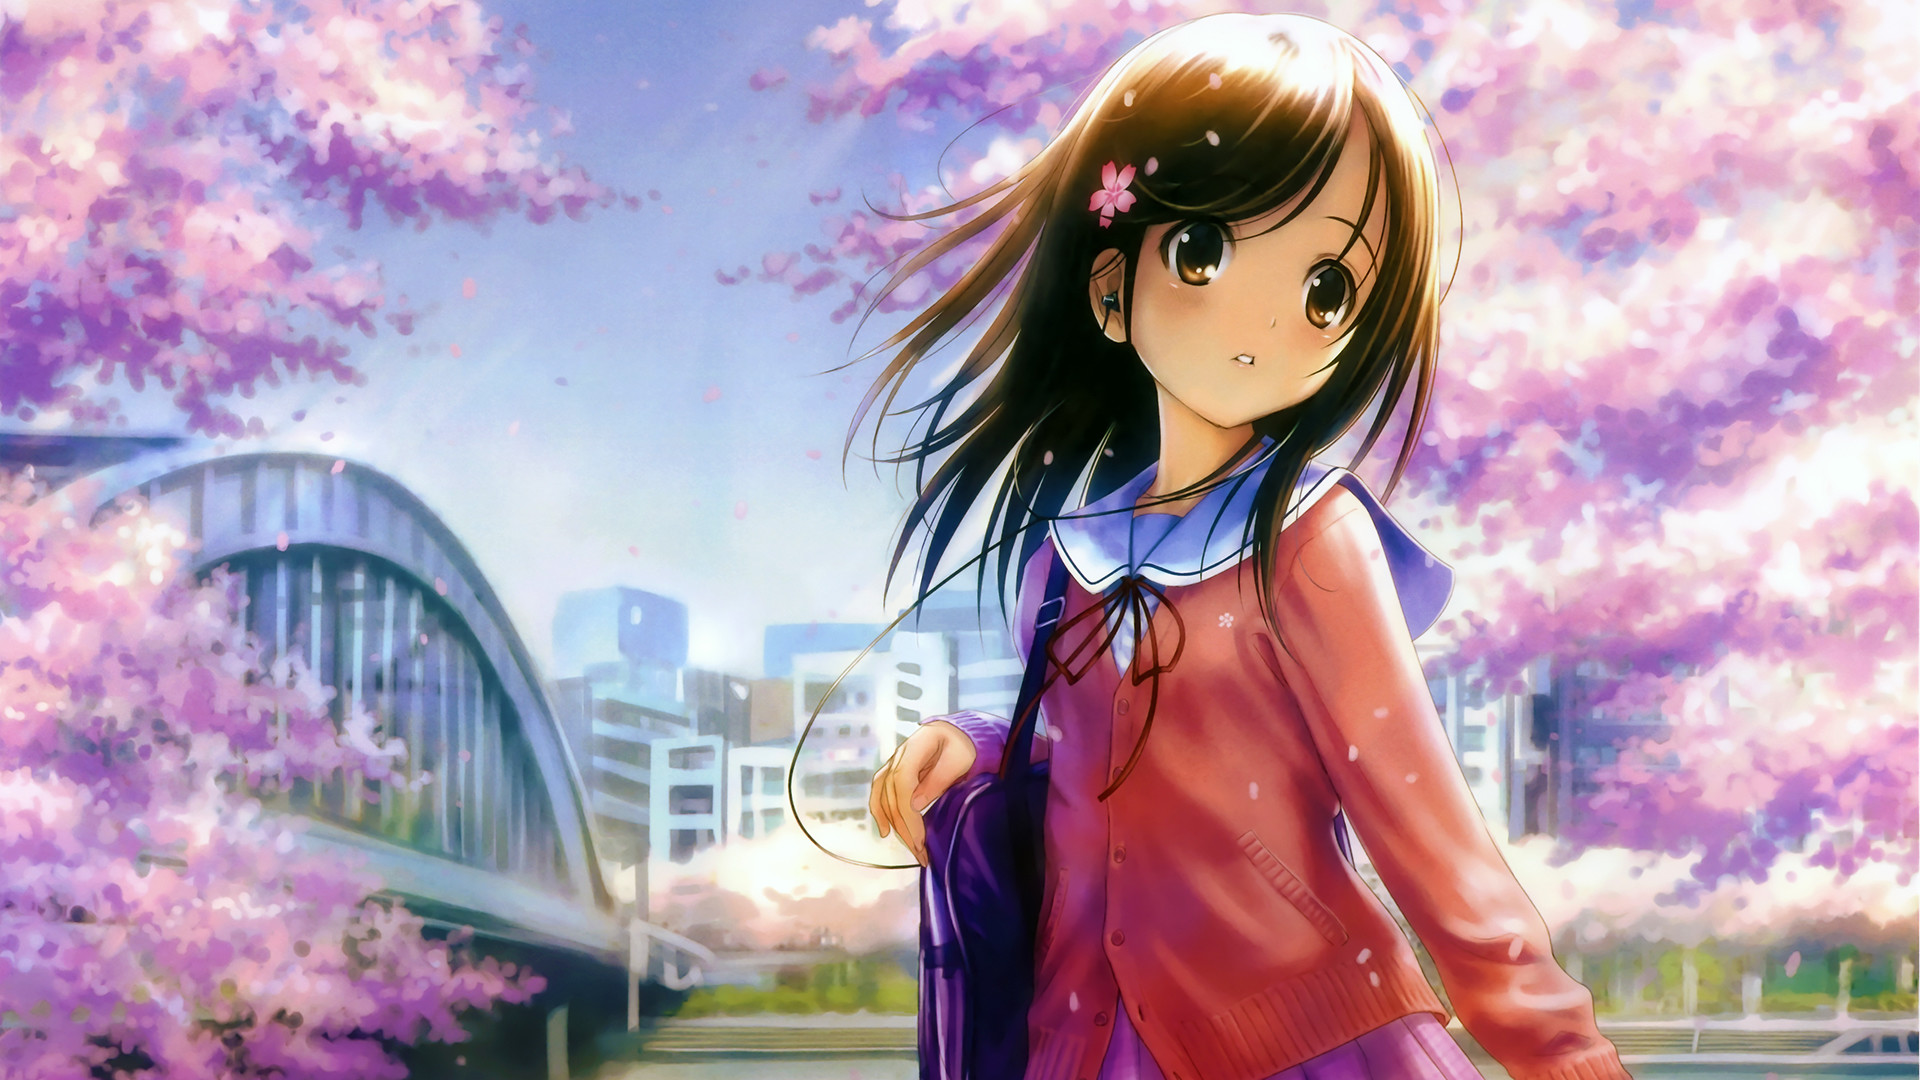 16 HD Cute Anime Desktop Wallpapers For Free Download